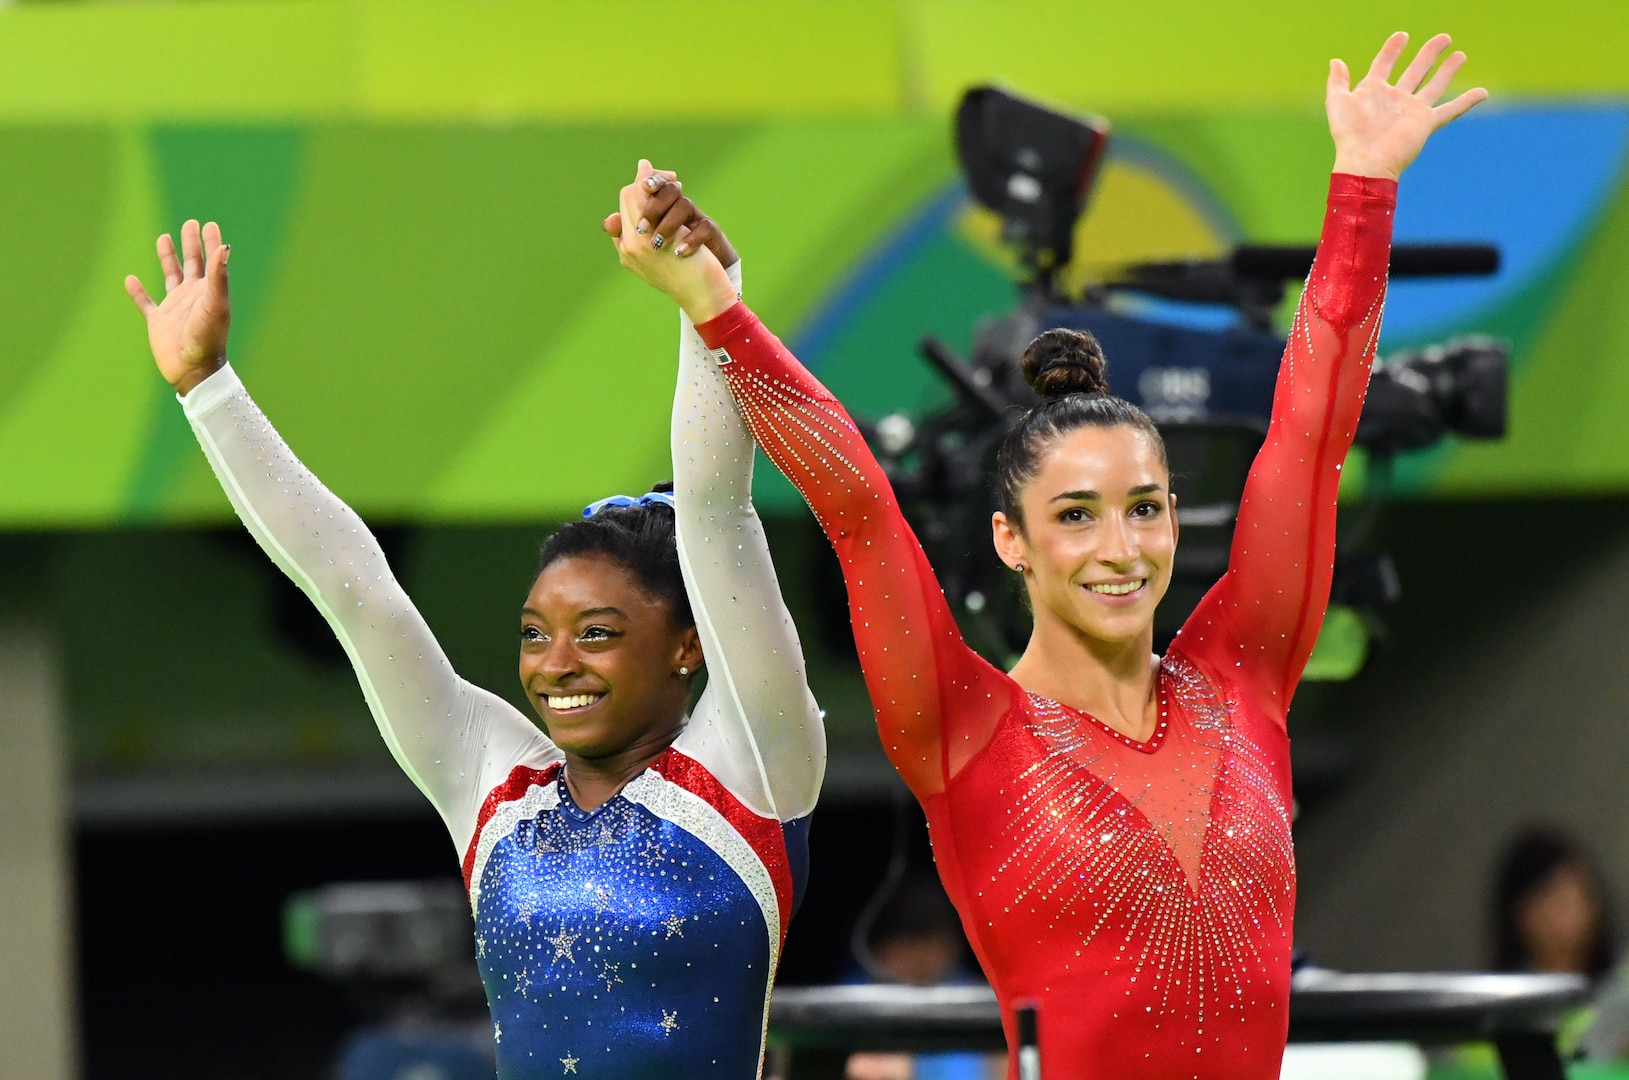 Simone Biles and Aly Raisman celebrate after winning the gold and silver medal, respectively, at the 2016 Rio Games.